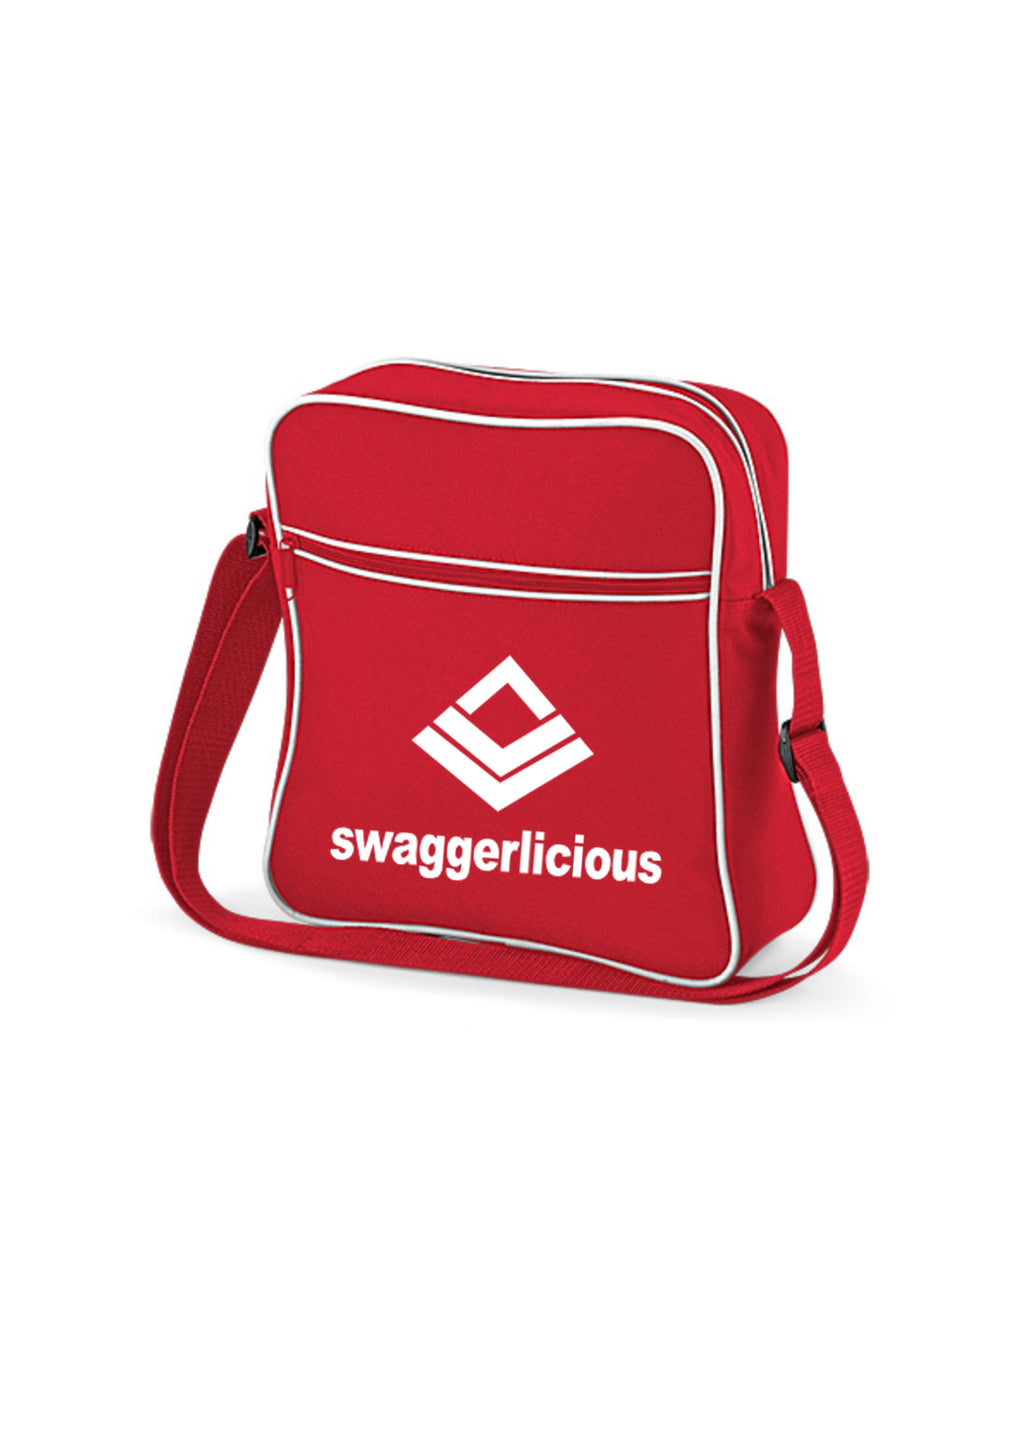 Swaggerlicious Classic Red Retro Flight Bag with White Logo - swaggerlicious-clothing.com